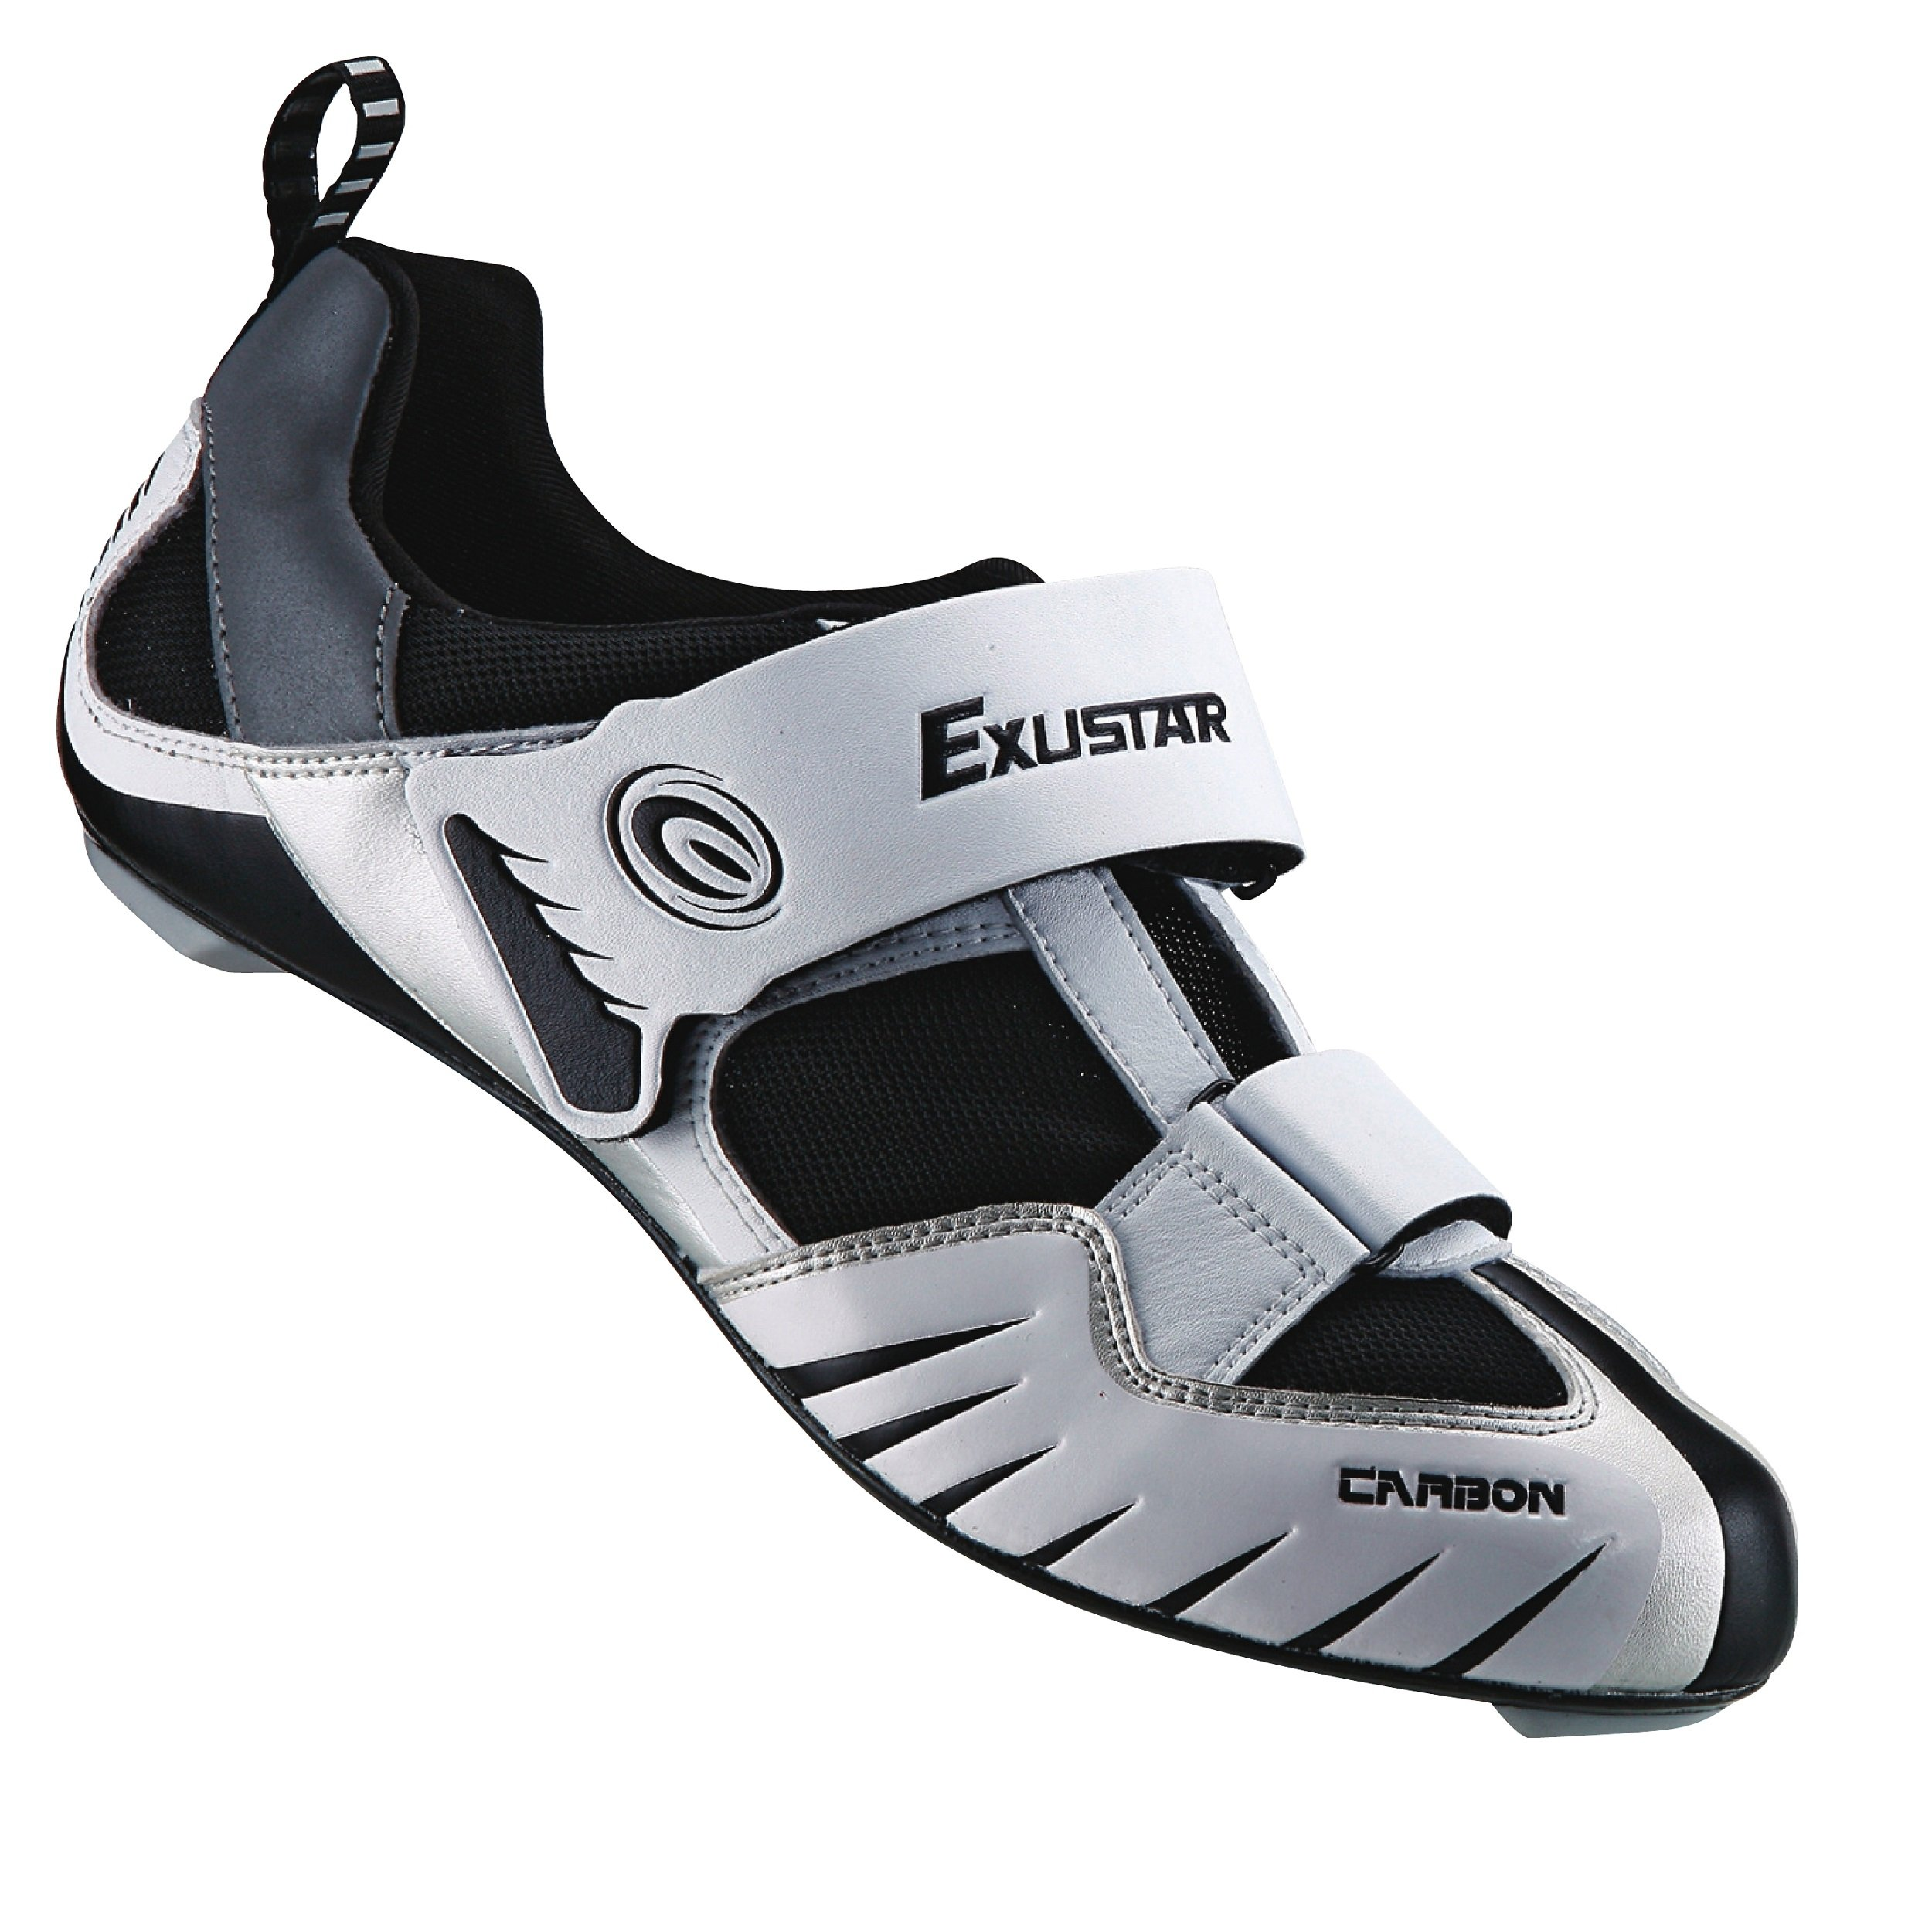 Exustar E-ST213 Triathlon Shoe, White, Size 45